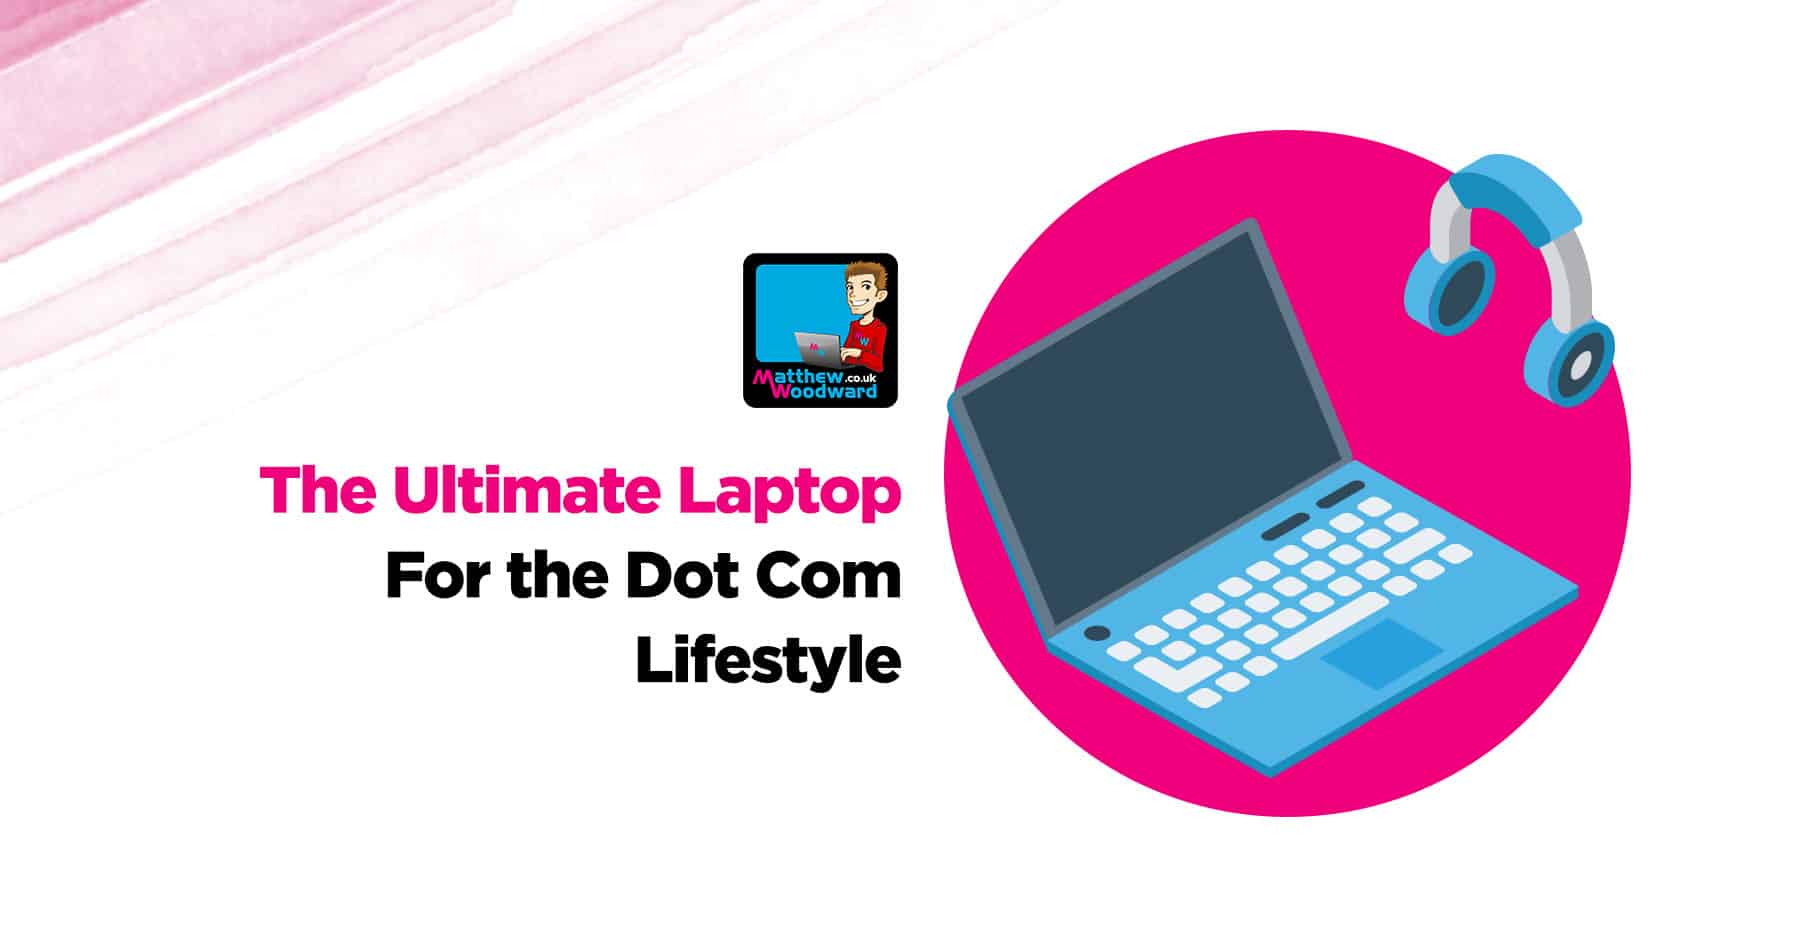 The Alienware 13 Is The Ultimate Laptop For The Dot Com